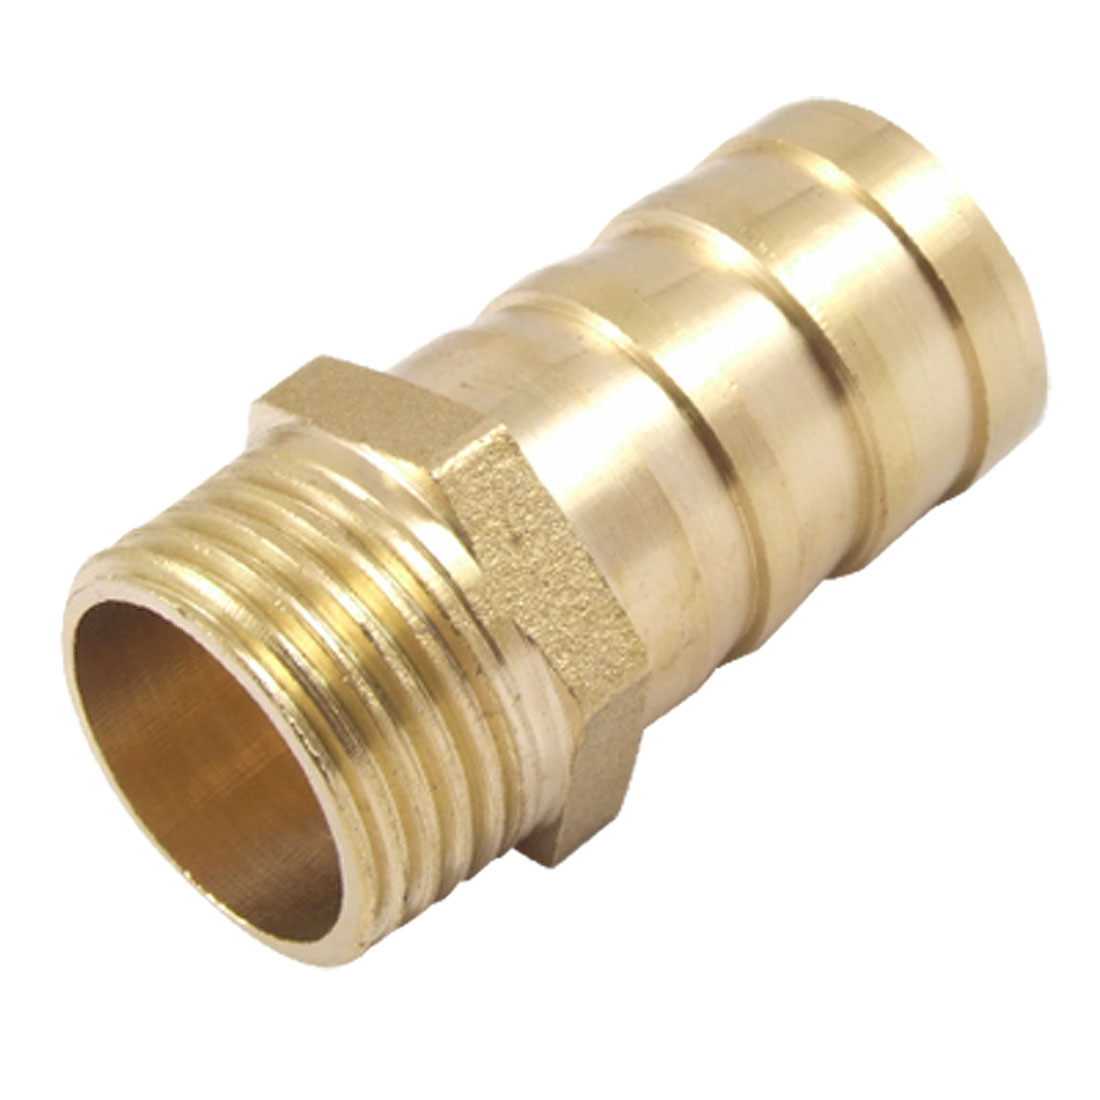 20.4mm OD Threaded 19mm Pneumatic Air Hose Straight Barb Fitting Coupling